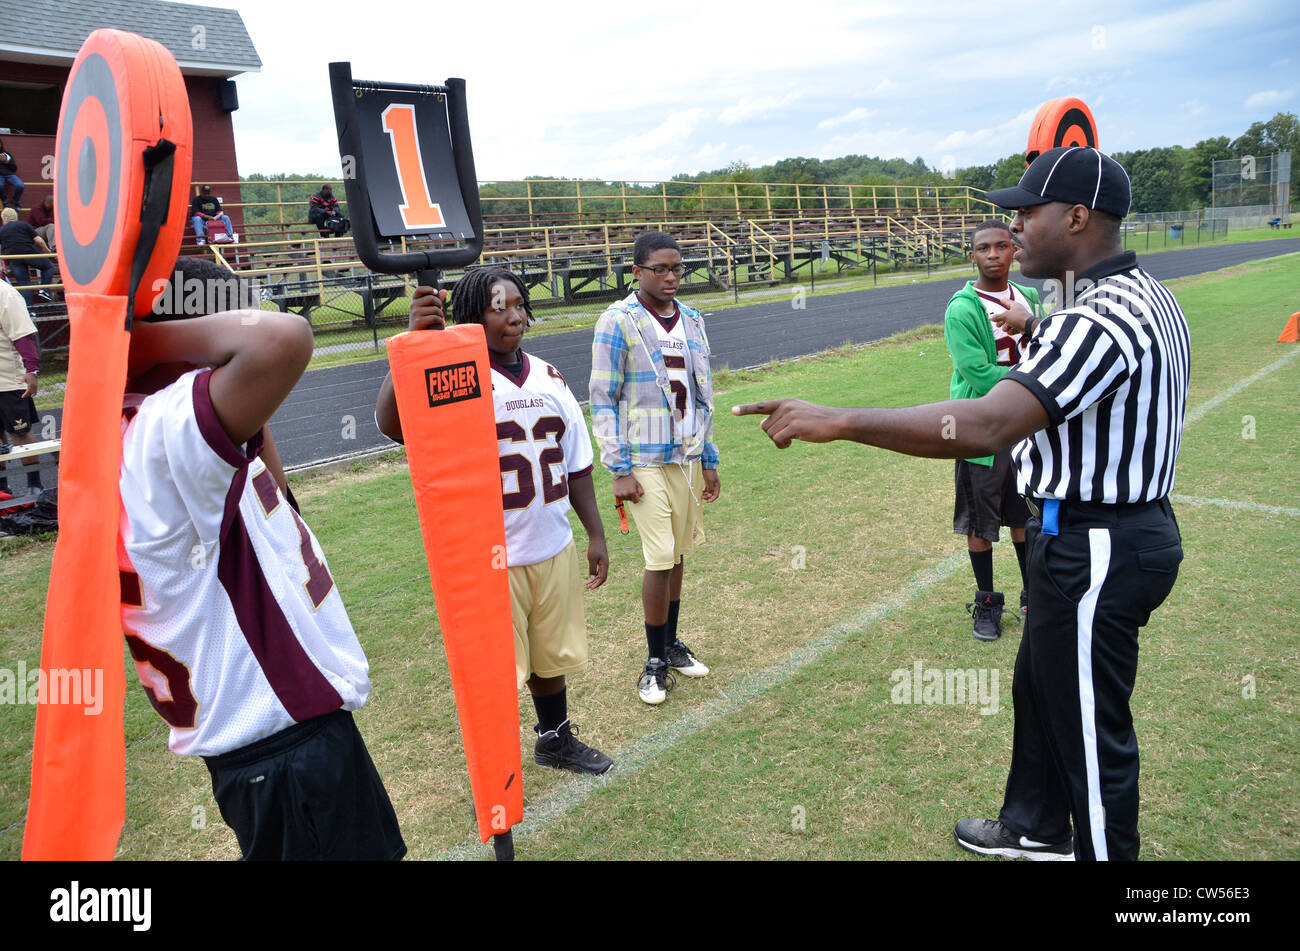 Referee gives instruction to the line people in Croom, Md - Stock Image